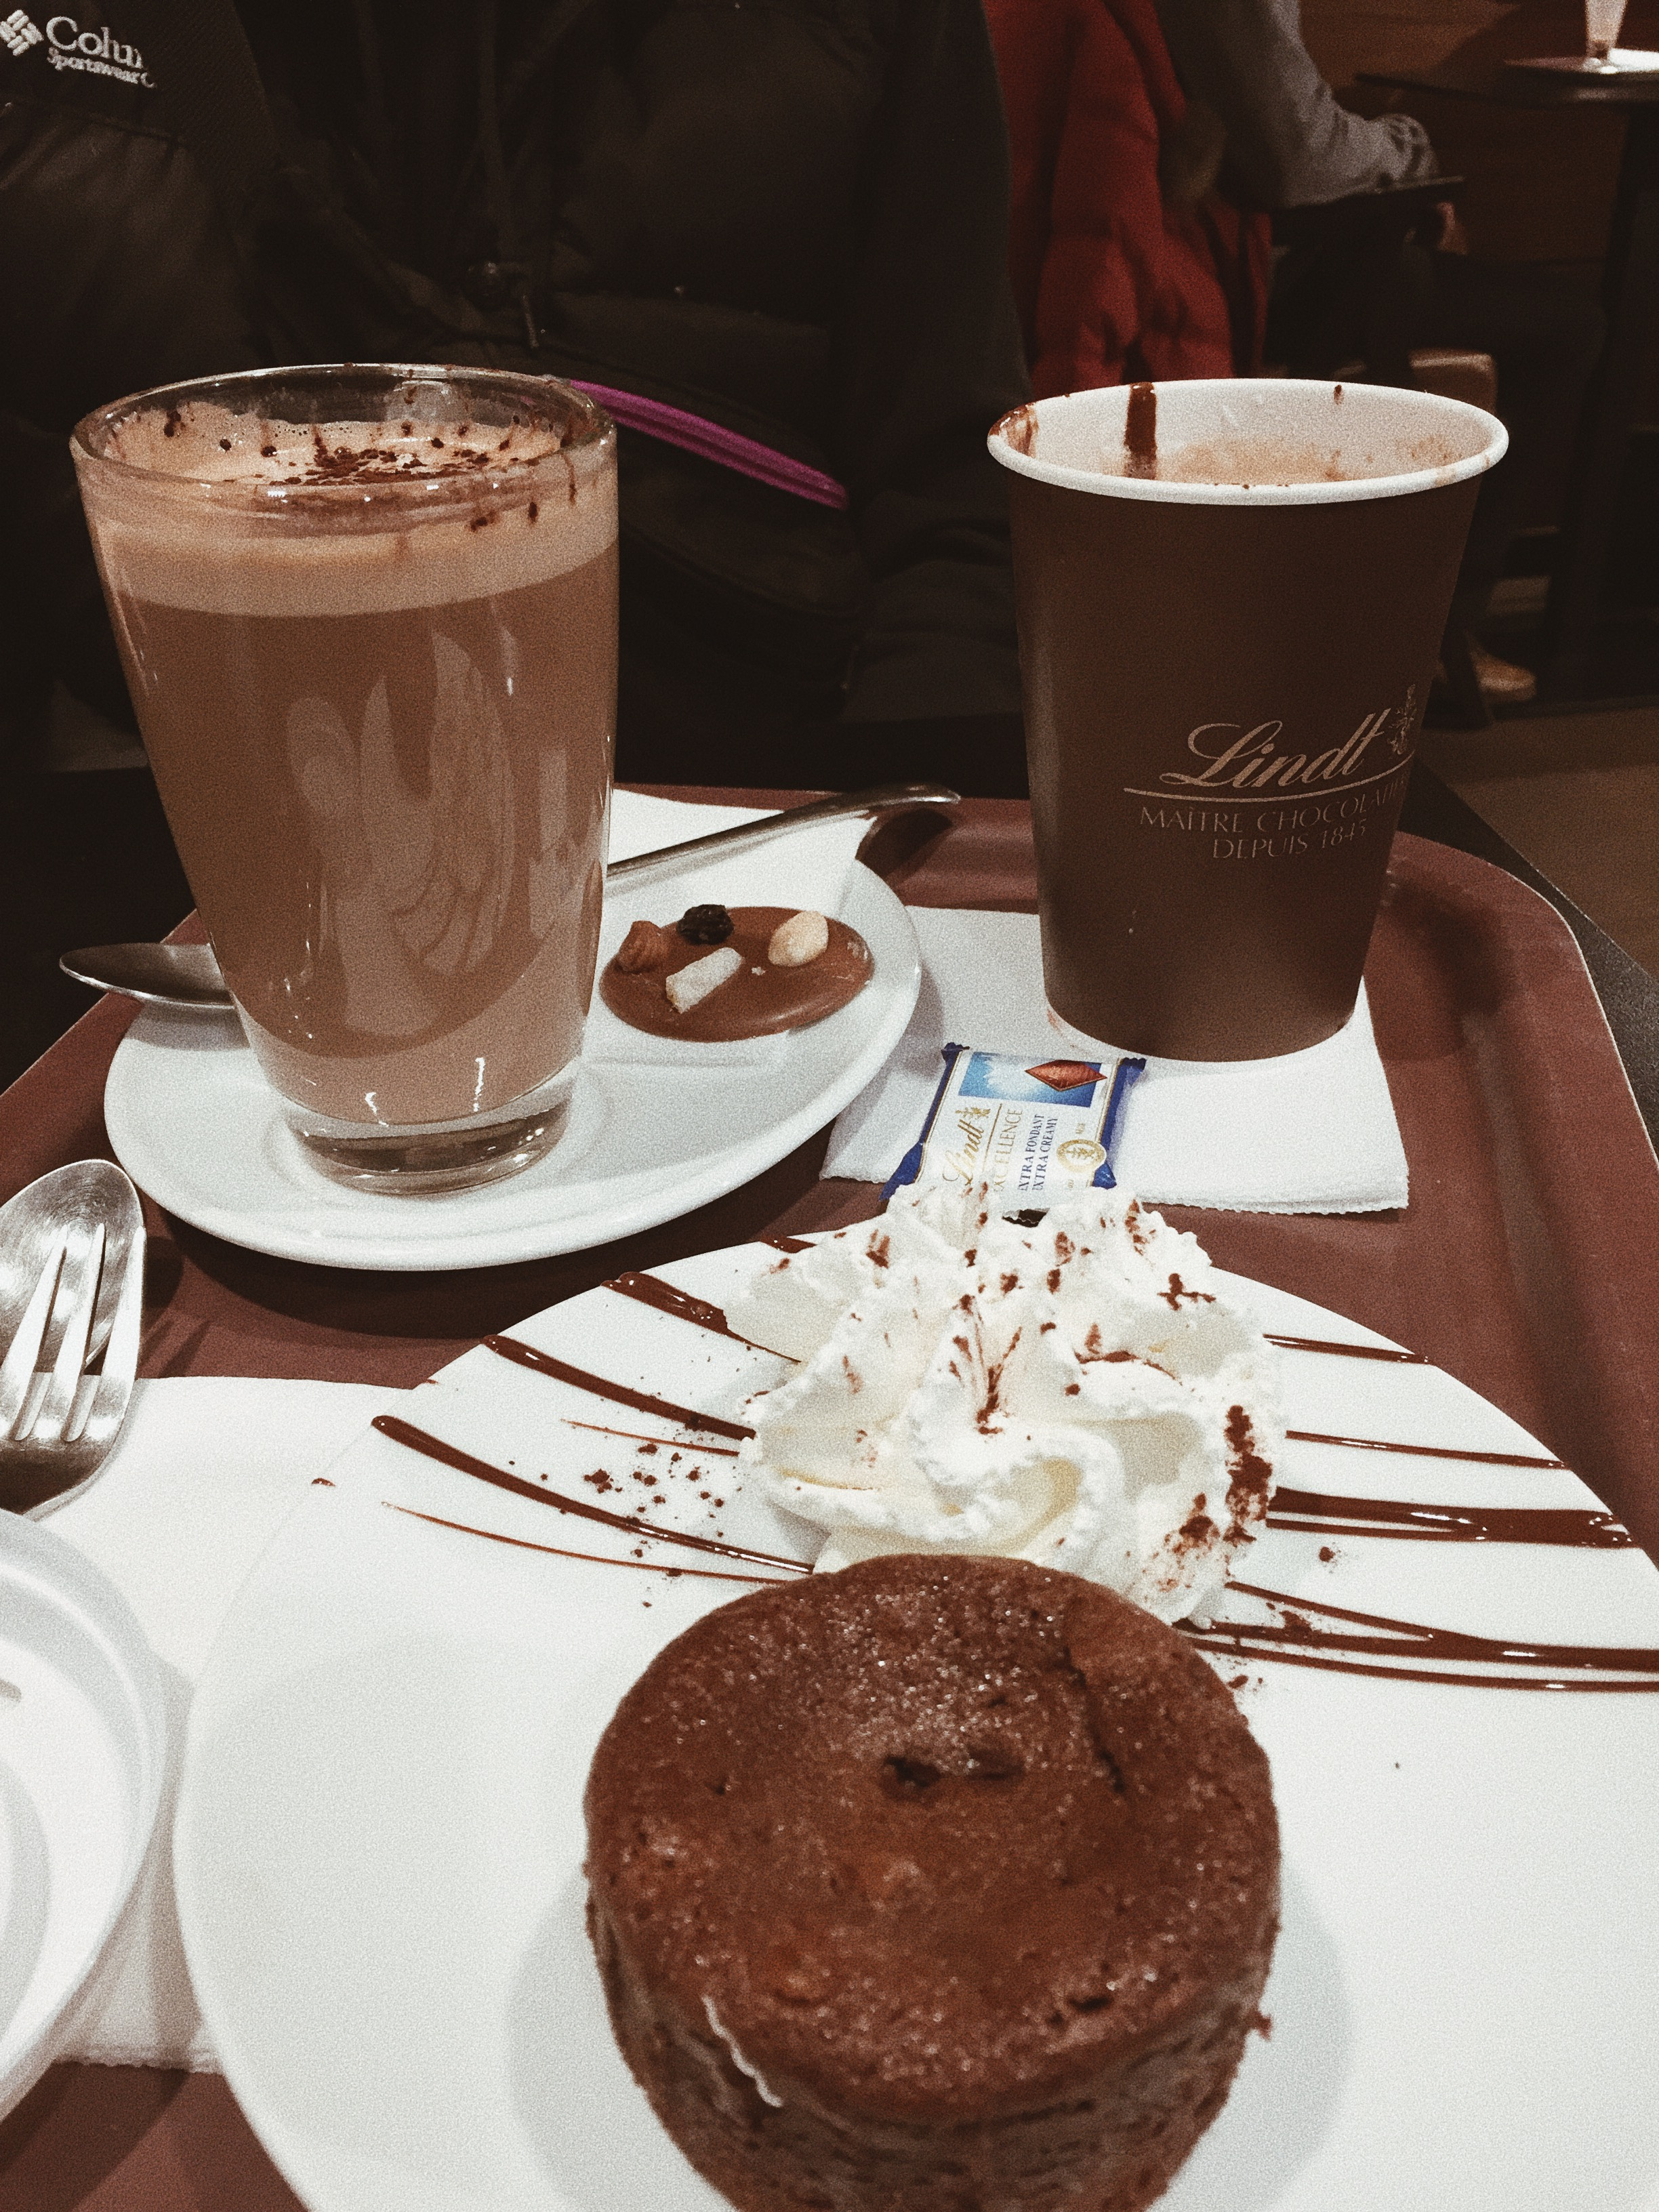 lindtt_hotchocolate_dessert_paris_france_food_travelguide